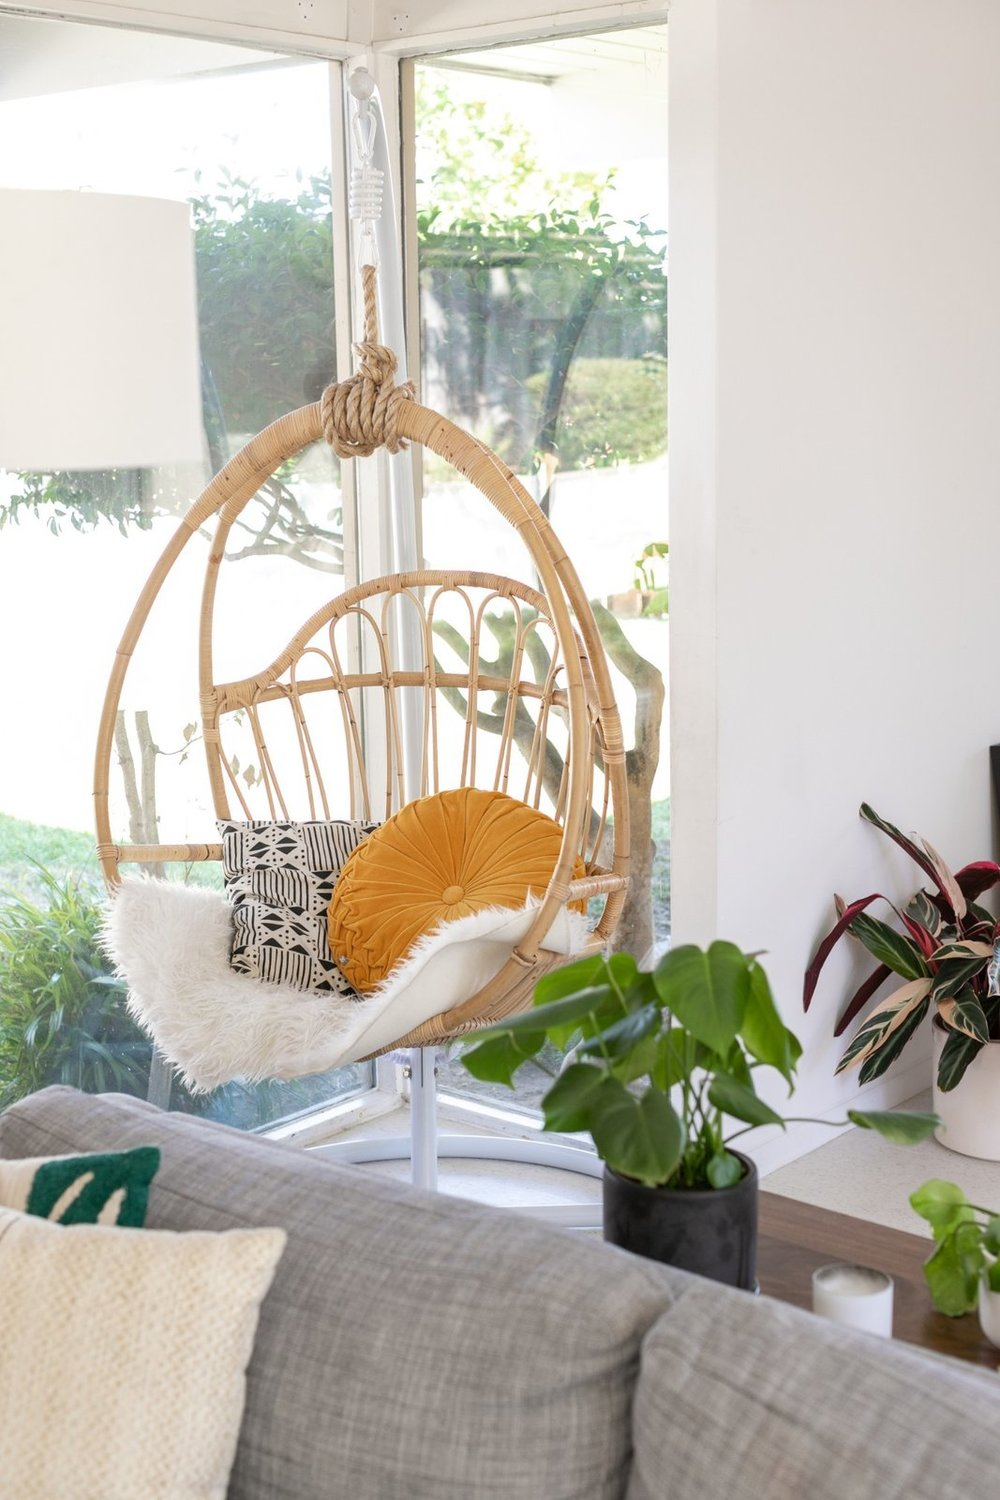 A hanging rattan chair is often used as a reading nook. (Sothear Nuon)